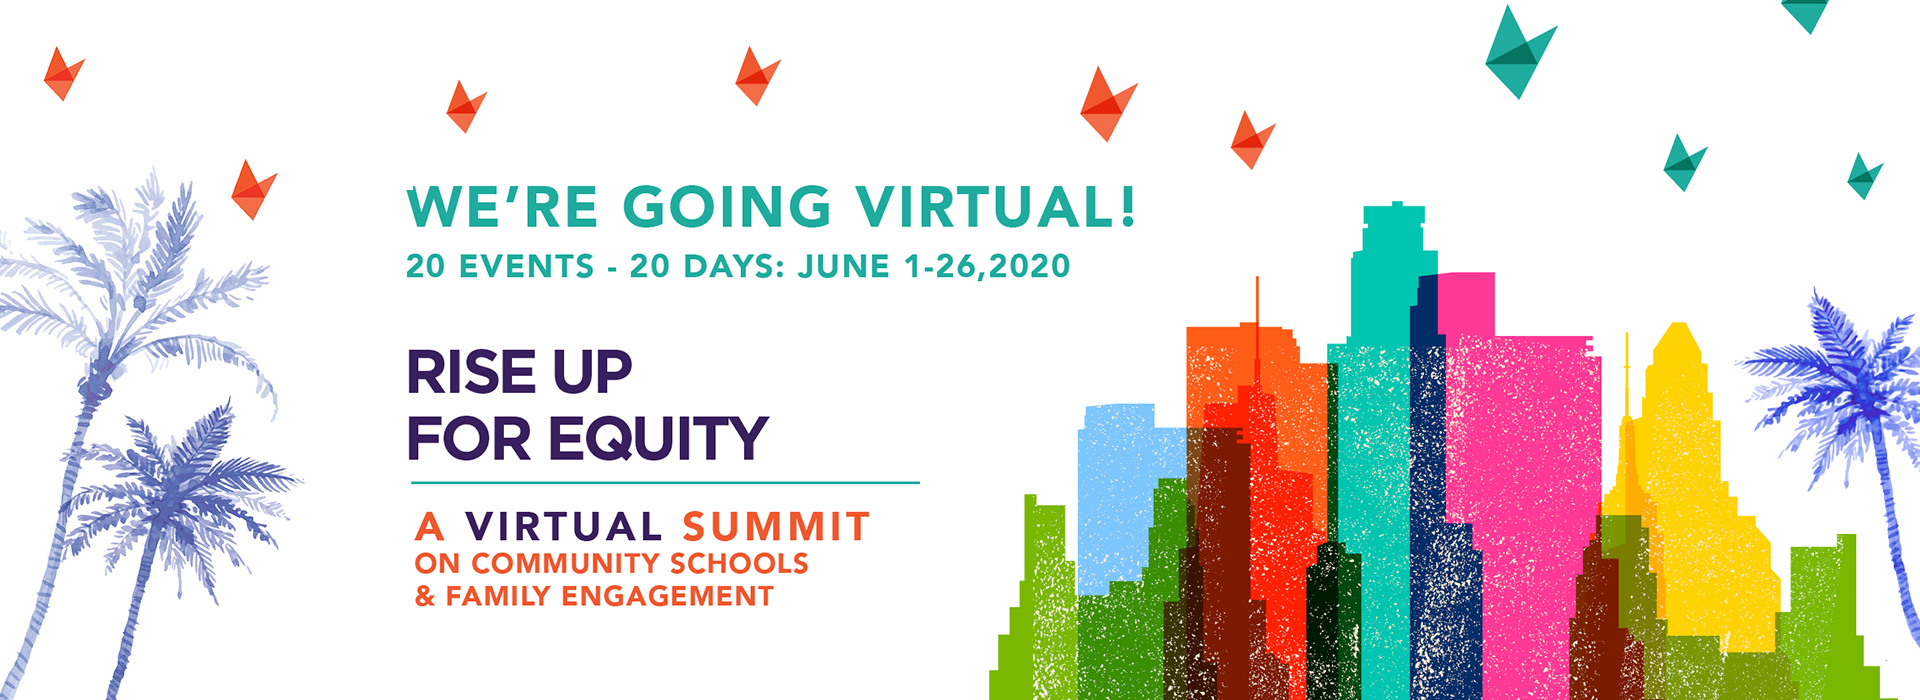 Rise Up for Equity Virtual Summit